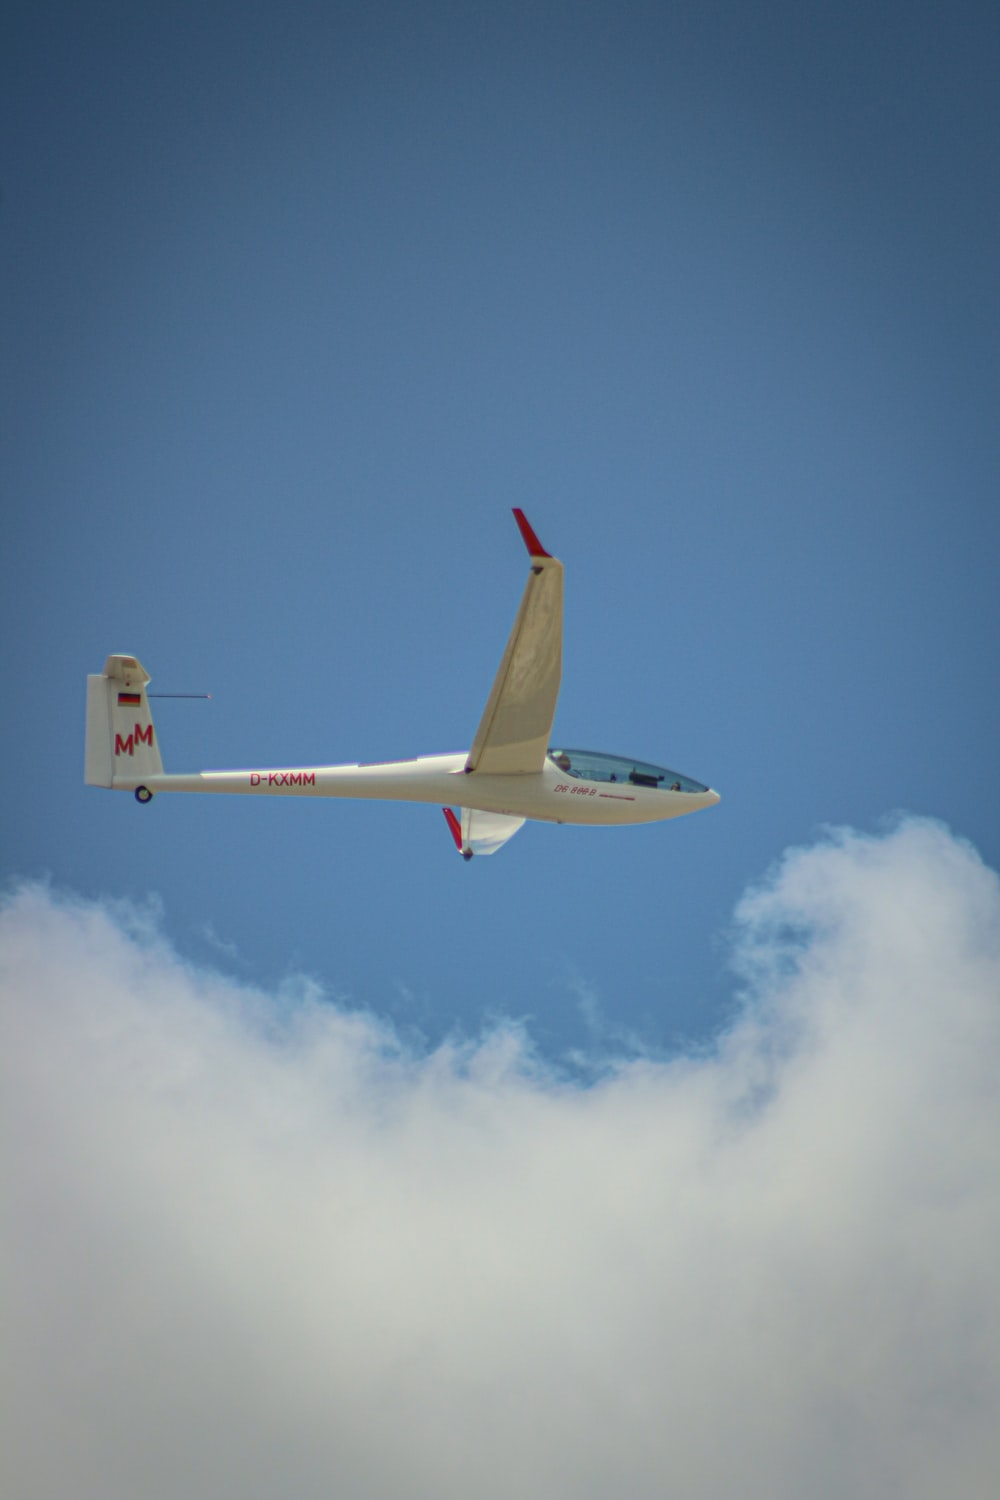 white and red airplane flying in the sky during daytime